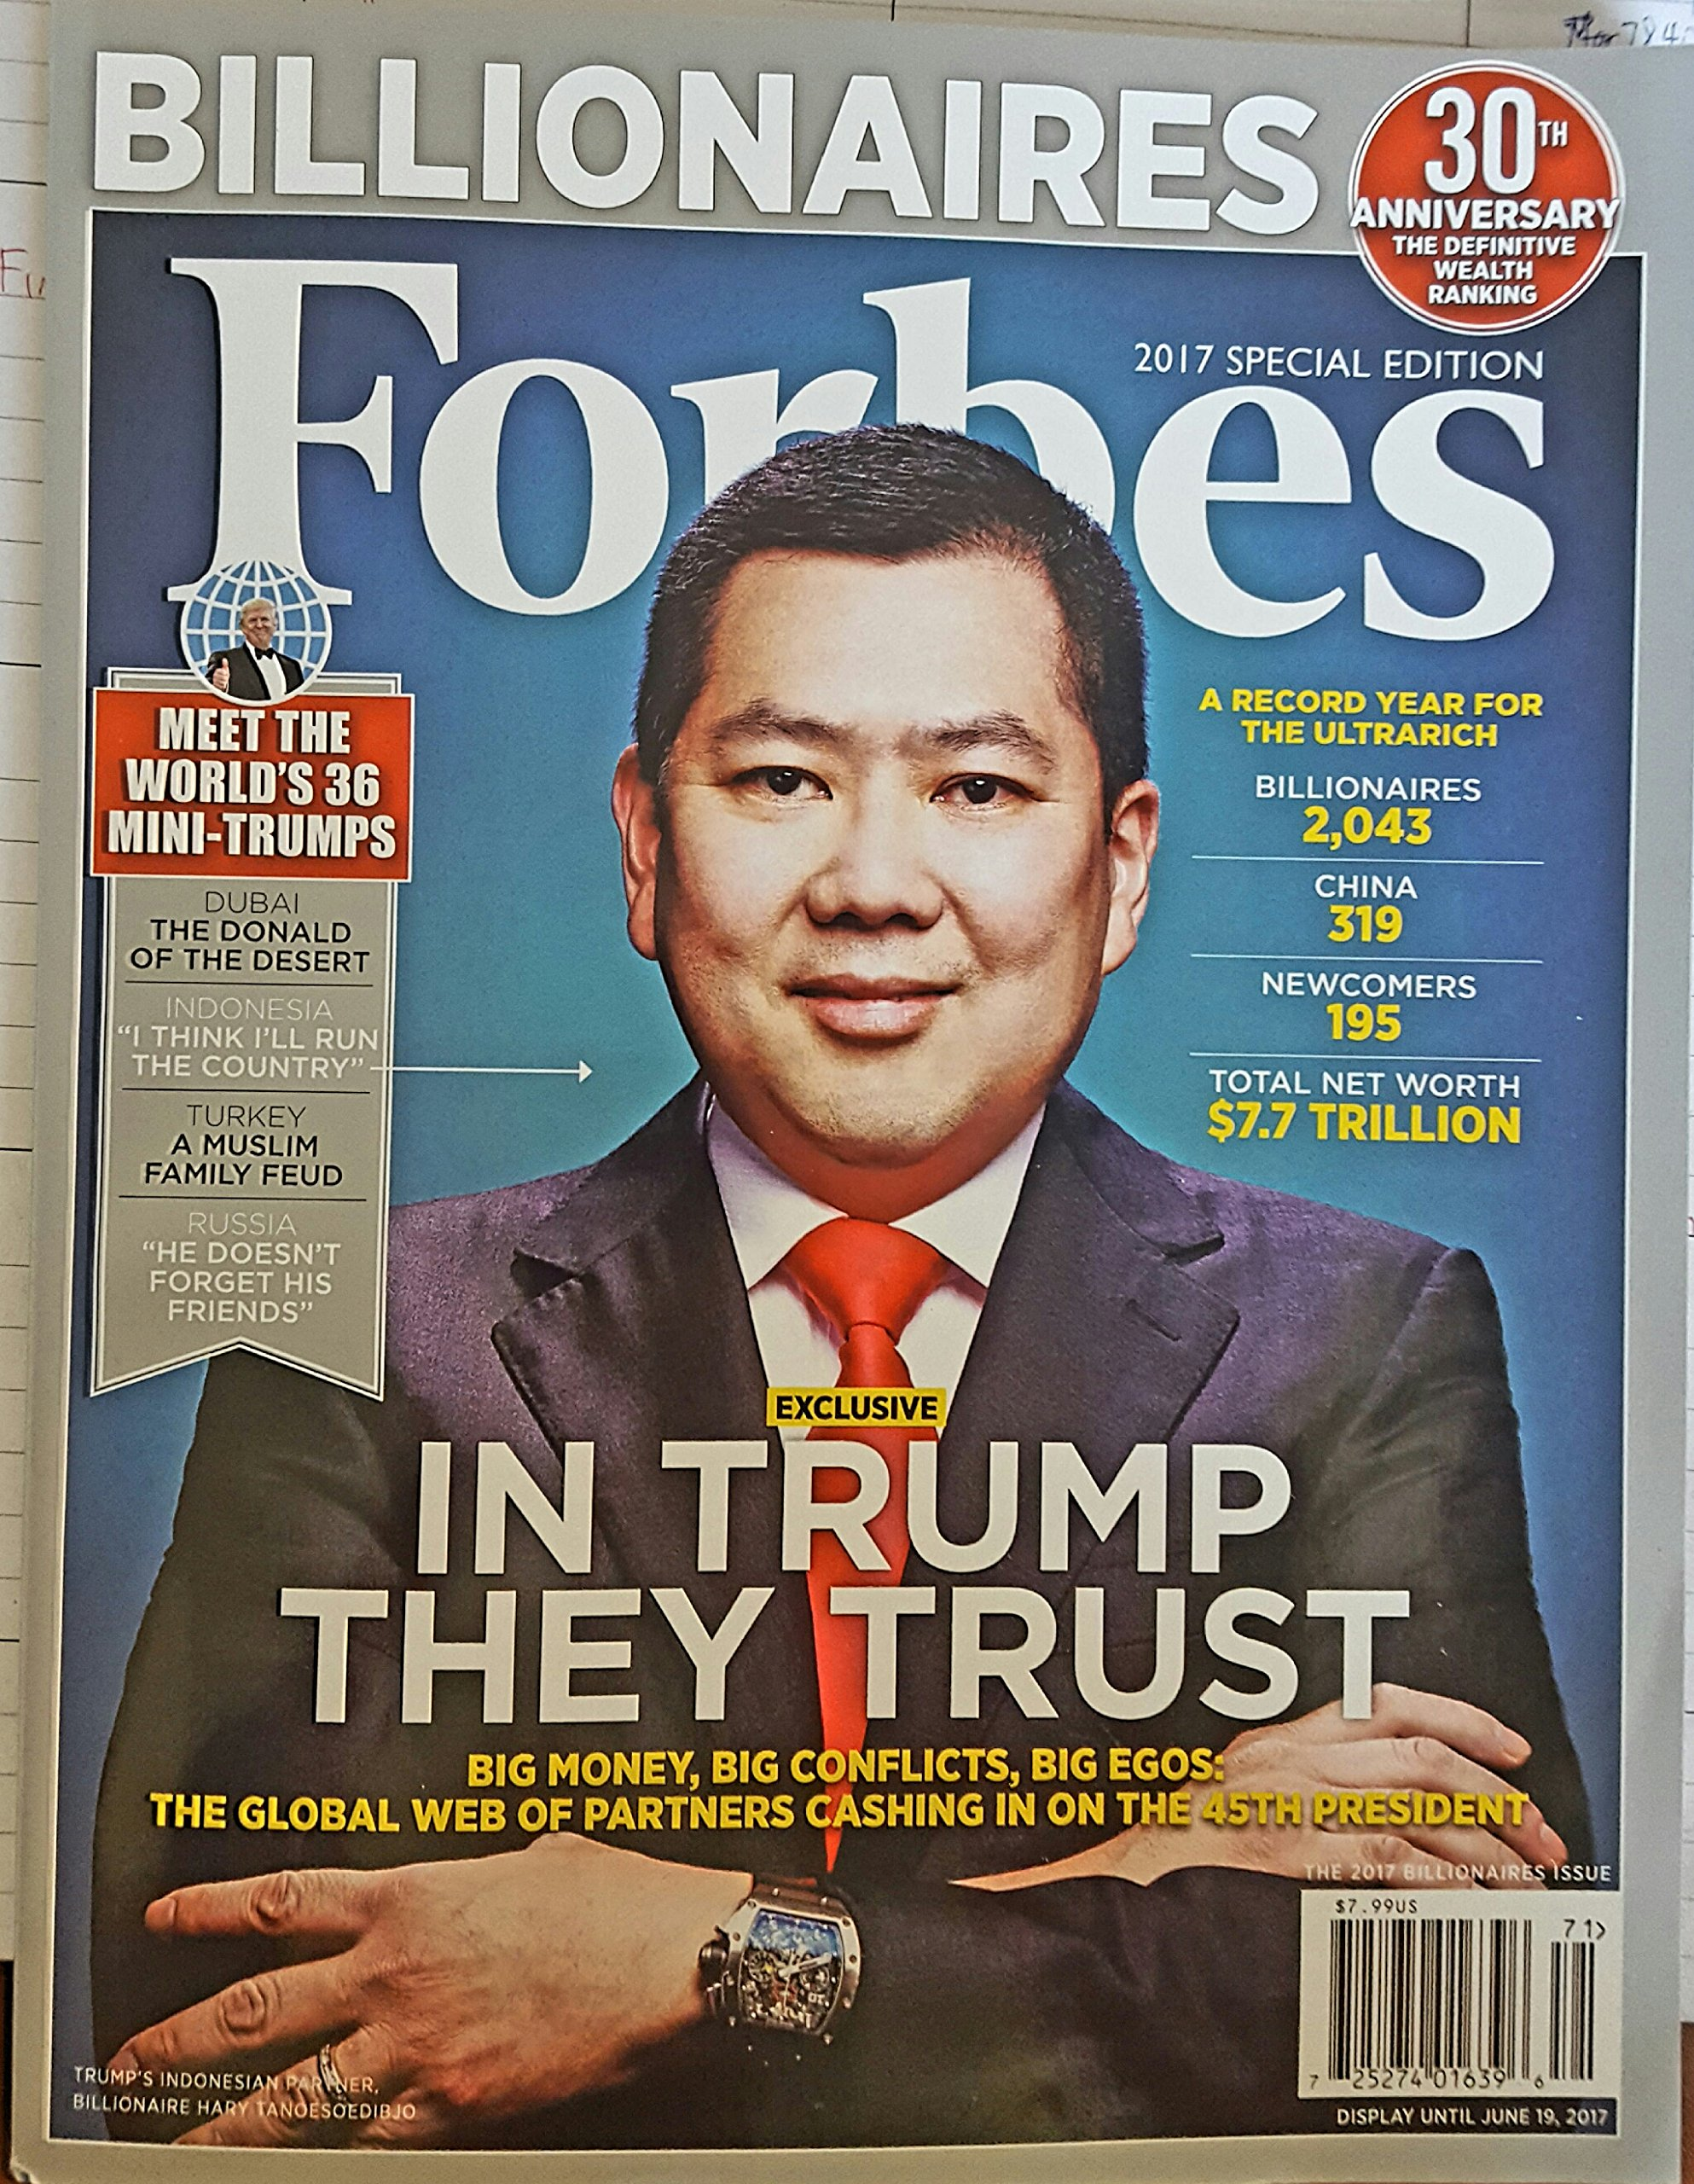 FORBES MAGAZINE 2017 30TH ANNIVERSARY RICHES BILLIONAIRES ISSUE SPECIAL EDITION - MEET THE WORLD'S MINI-TRUMPS, 2017 WEALTH RANKING, A RECORD YEAR FOR THE ULTRARICH pdf